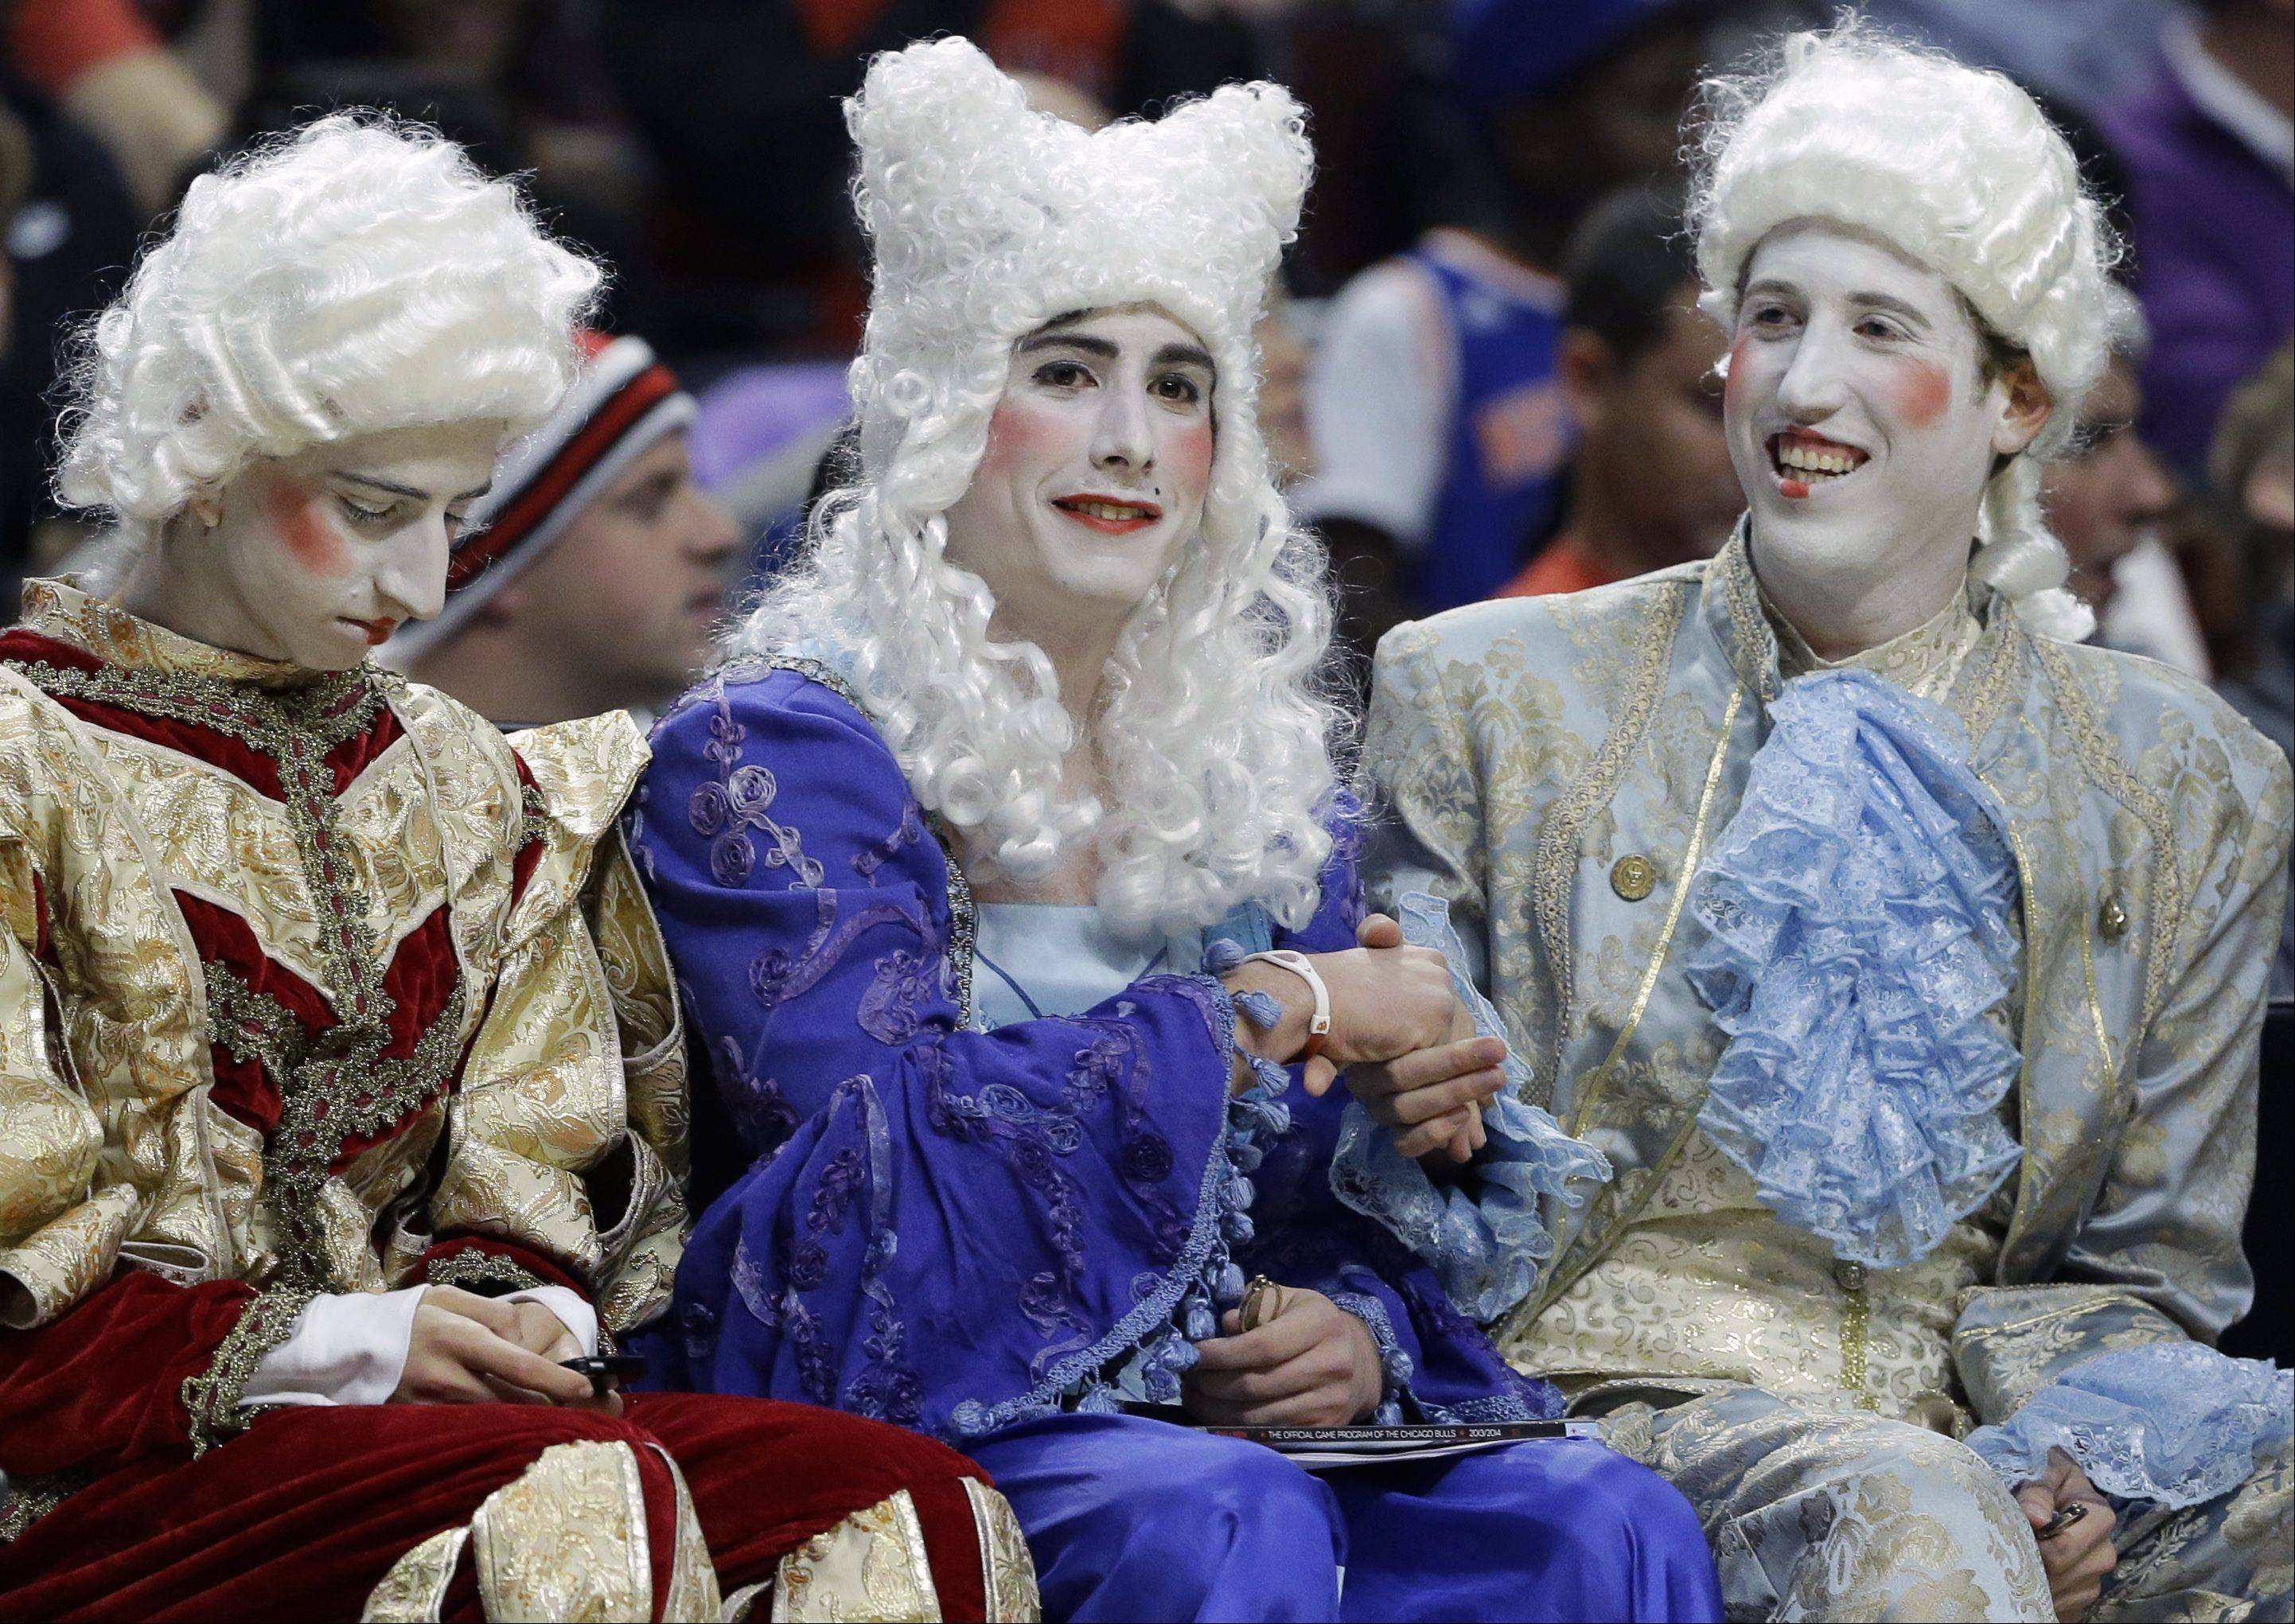 Basketball fans are dressed in Halloween costumes as they watch the New York Knicks and the Chicago Bulls during the first half.